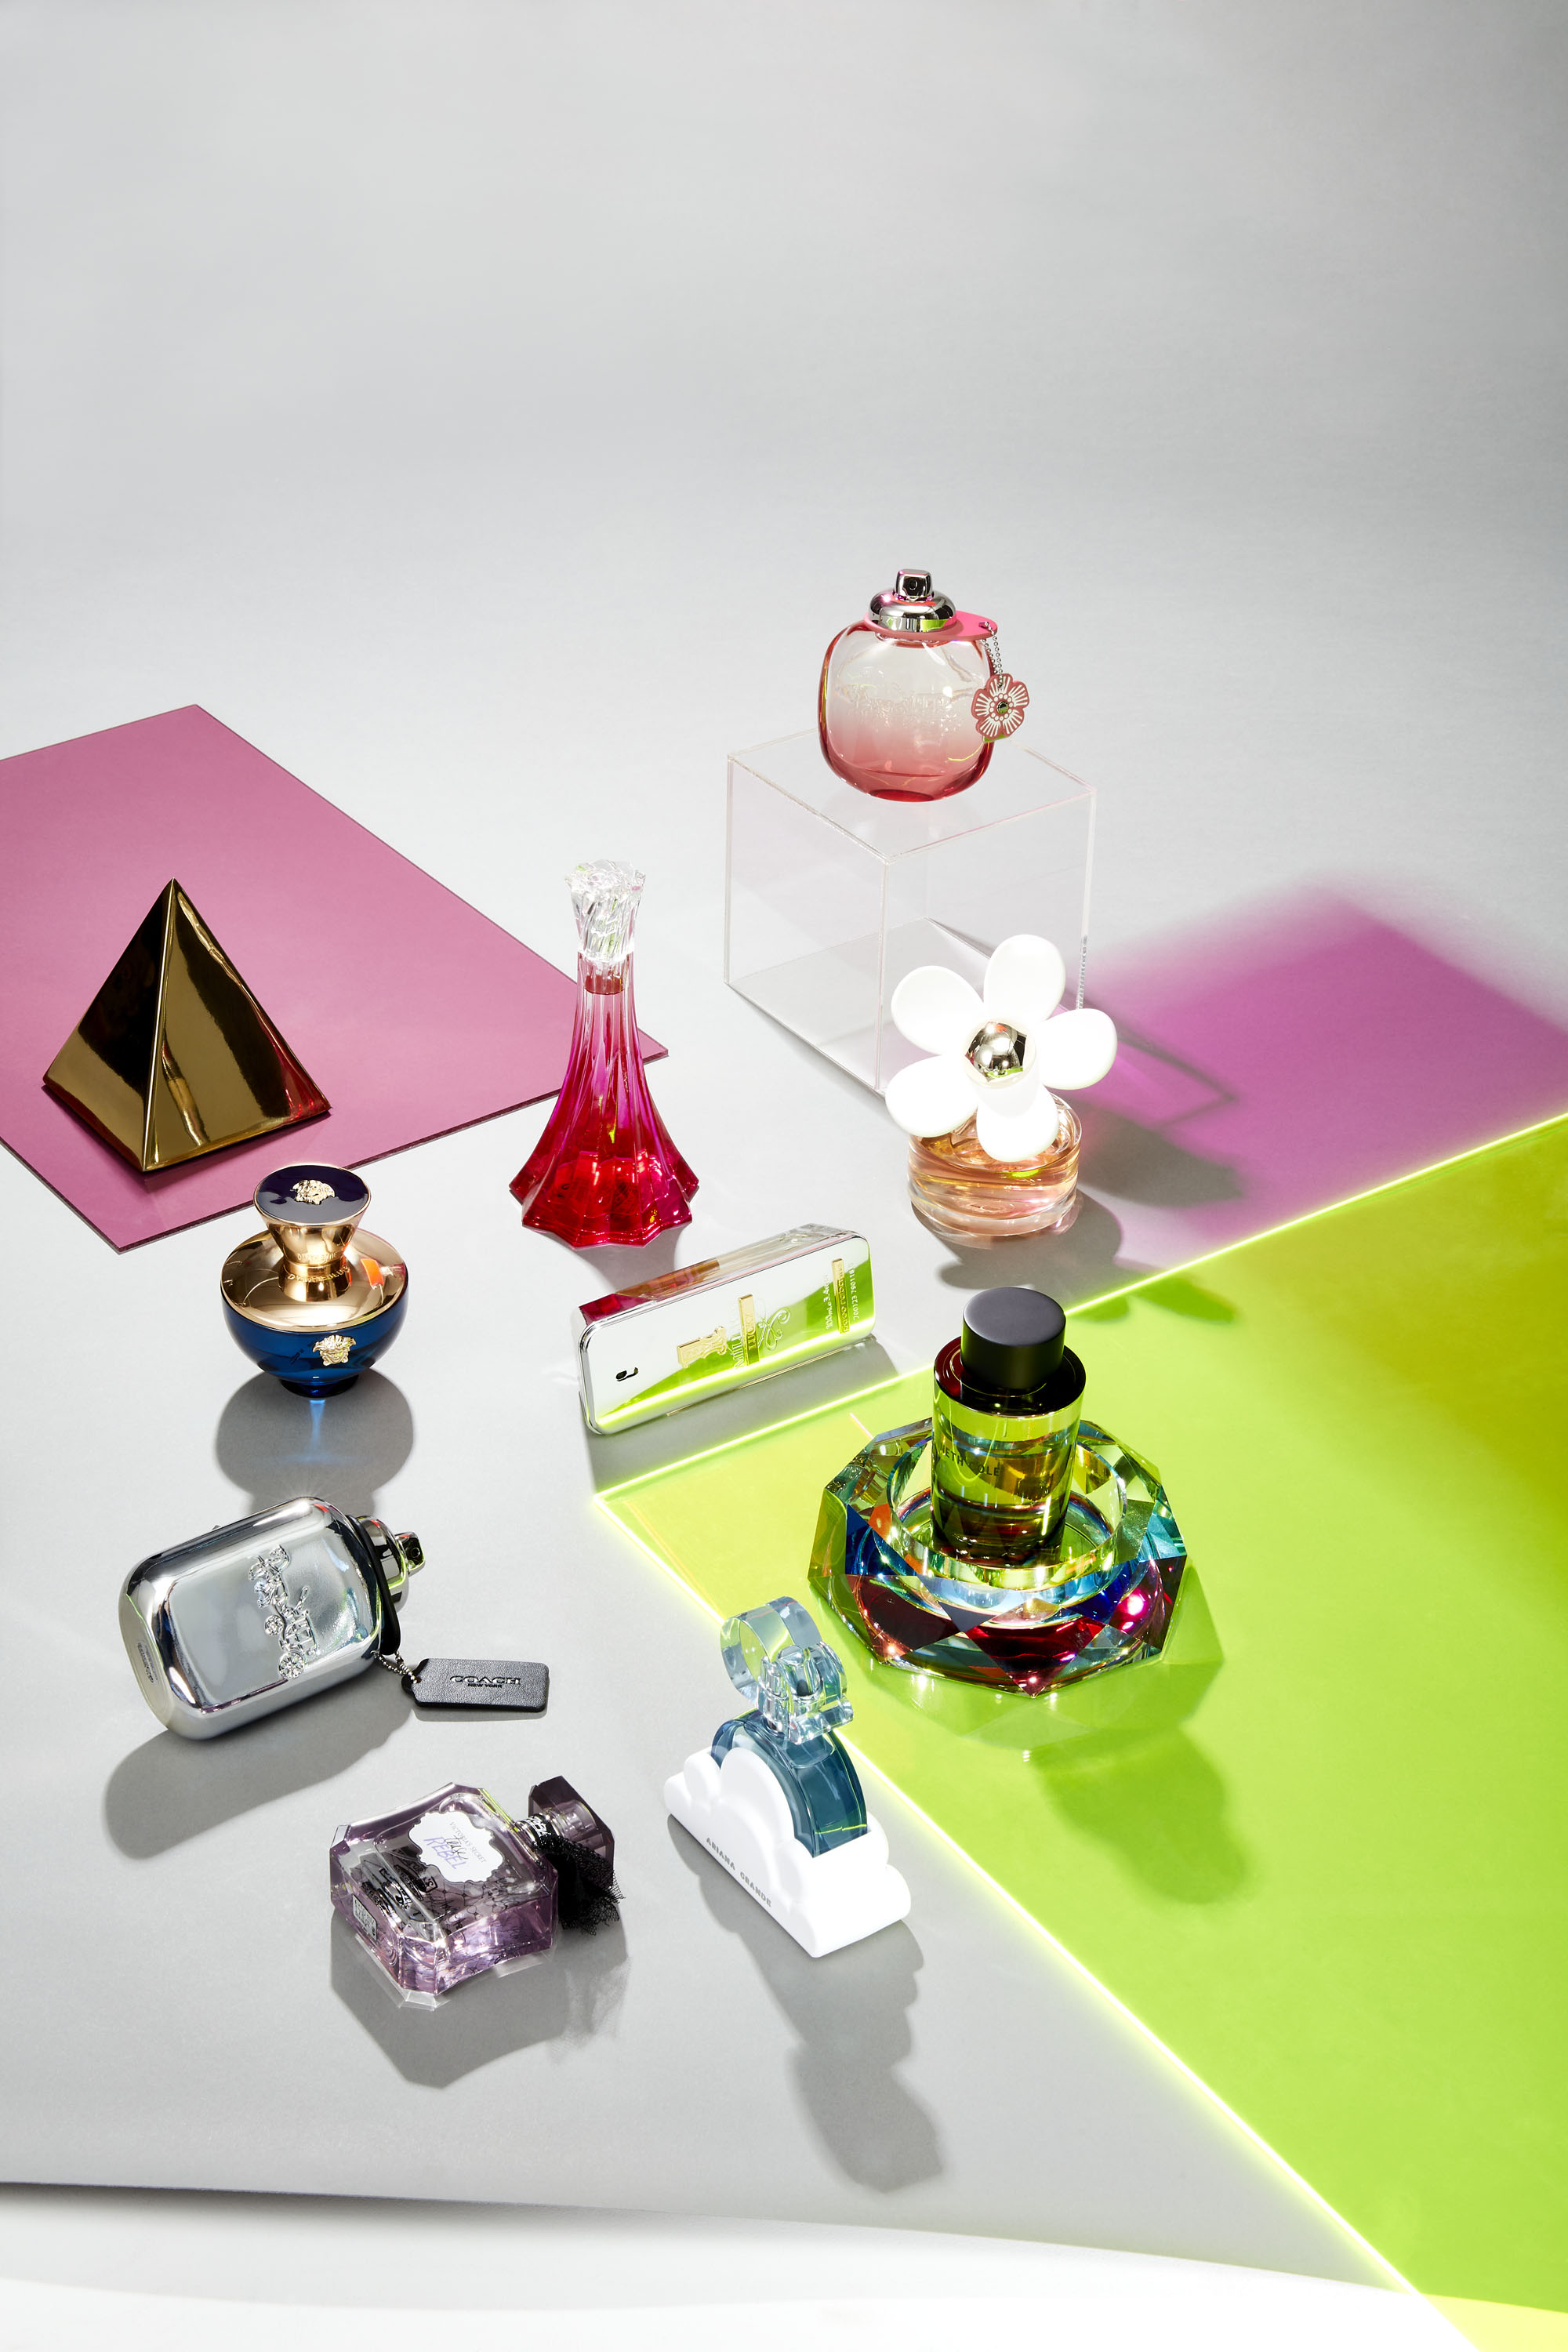 Clockwise from the top:Coach Floral; $60 for 1.0-oz.; Perfumer: Nadge Le Garlantezec, Shyamala Maisondieu and Nathalie Cetto for GivaudanMarc Jacobs Daisy Love; $104 for 3.4-oz.; Perfumer: Alberto Morillas for FirmenichKenneth Cole for Him; $85 for 3.4-oz.; Perfumer: Philippe Romano for DromAriana Grande Cloud; $60 for 3.4-oz.; Perfumer: Clement Gavarry for FirmenichVictoriaÕs Secret Tease Rebel; $68 for 3.4-oz.; Perfumer: Stephen Nilsen for GivaudanCoach Platinum; $95 for 3.3-oz.; Perfumer: Bruno Jovanovic for IFFVersace Dylan Blue Pour Femme; $120 for 3.3-oz.; Perfumer: Calice Becker for GivaudanChristian Siriano Silhouette in Bloom; $92 for 3.4-o.z; Perfumer: Honorine Blanc for FirmenichPaco Rabanne 1 Million Lucky; $90 for 3.4-oz.; Perfumer: Nathalie Cetto for Givaudan